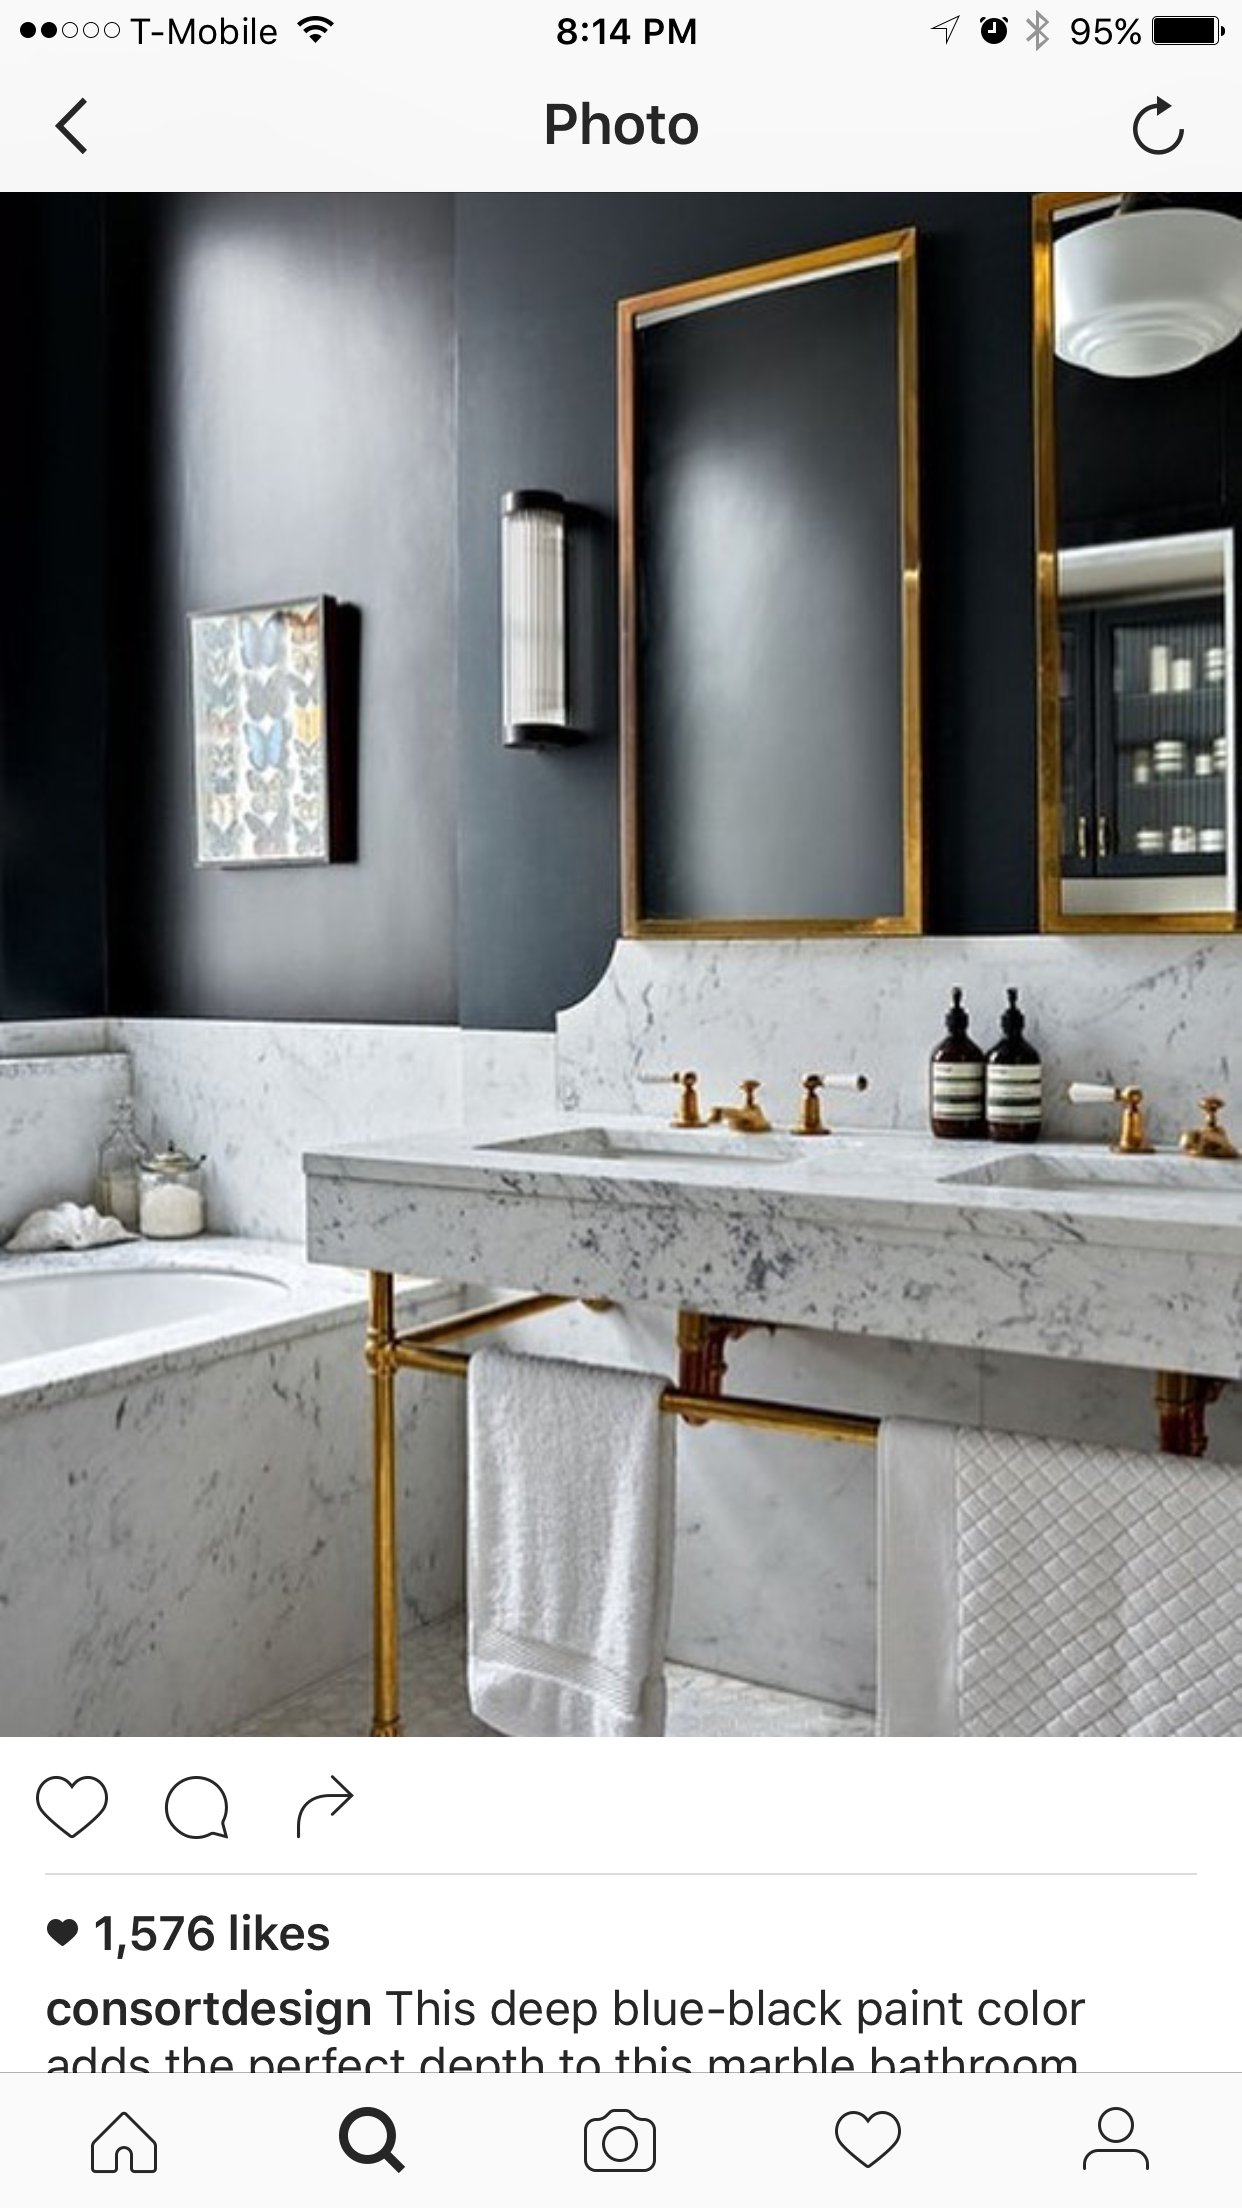 Marble Bathroom Suite with Marble Accents in Small Bathroom Ideas. Small  blue-black bathroom with marble suite, mirror and pendant light fitting.